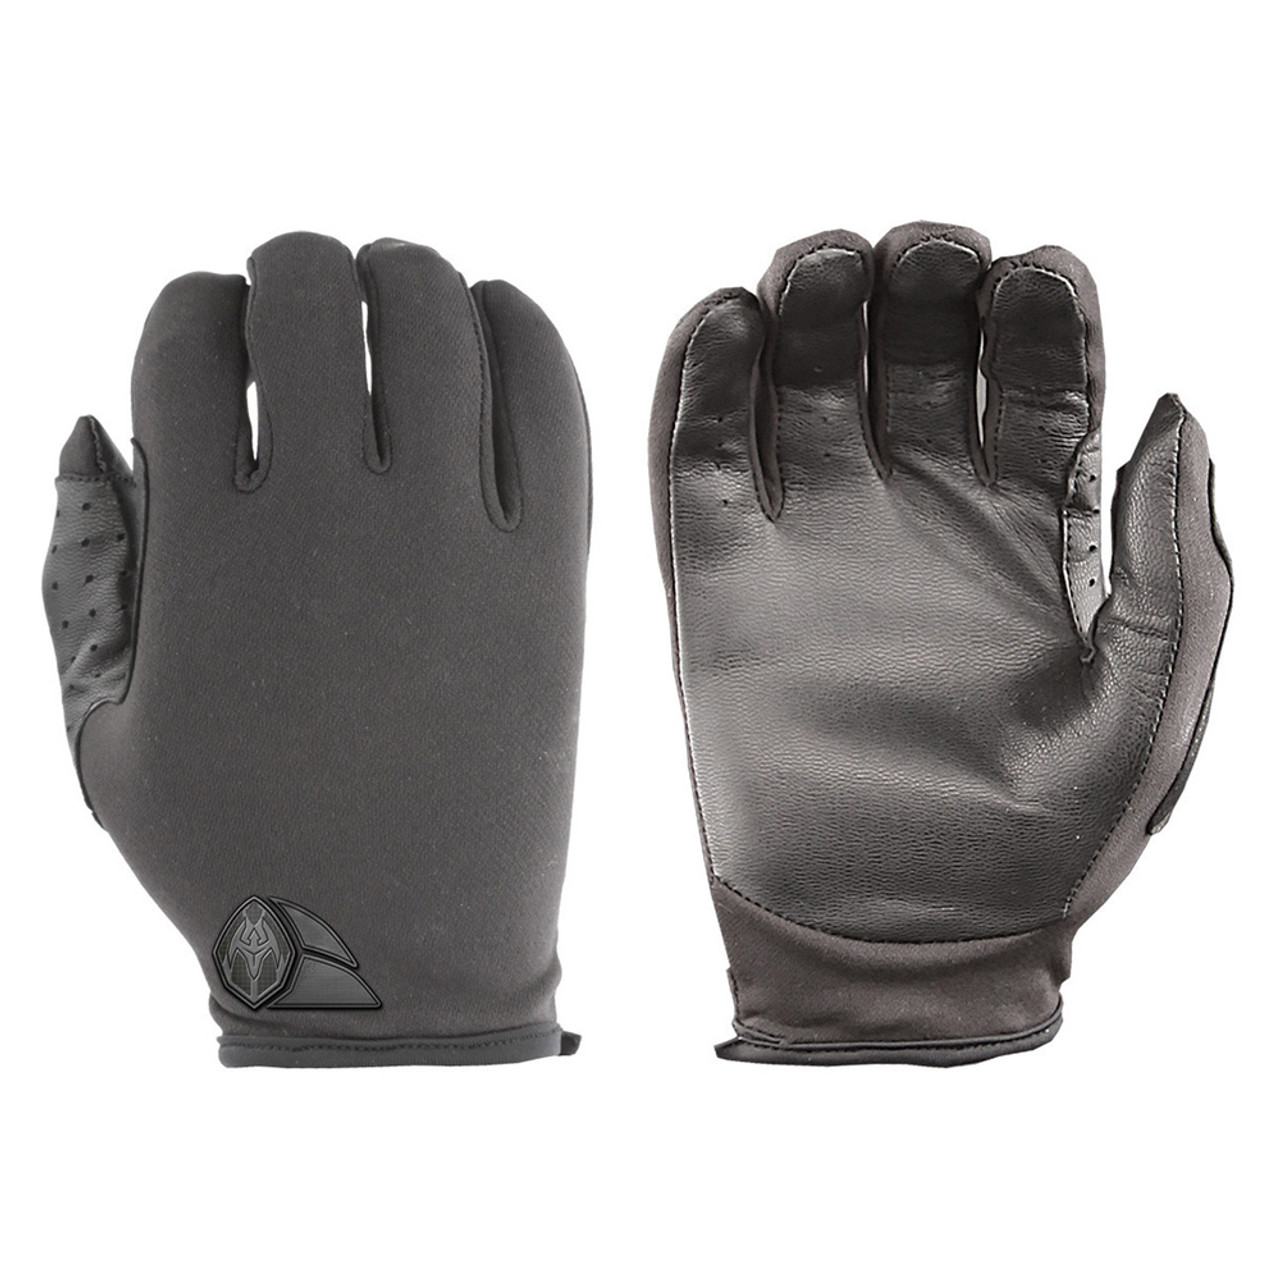 Damascus ATX Duty Advanced Police Riot Gear Tactical Gloves ATX5 Lightweight thin patrol w/ lycra back, leather palms, Slip-on construction with zero bulk, Lightweight Lycra® twill backhands